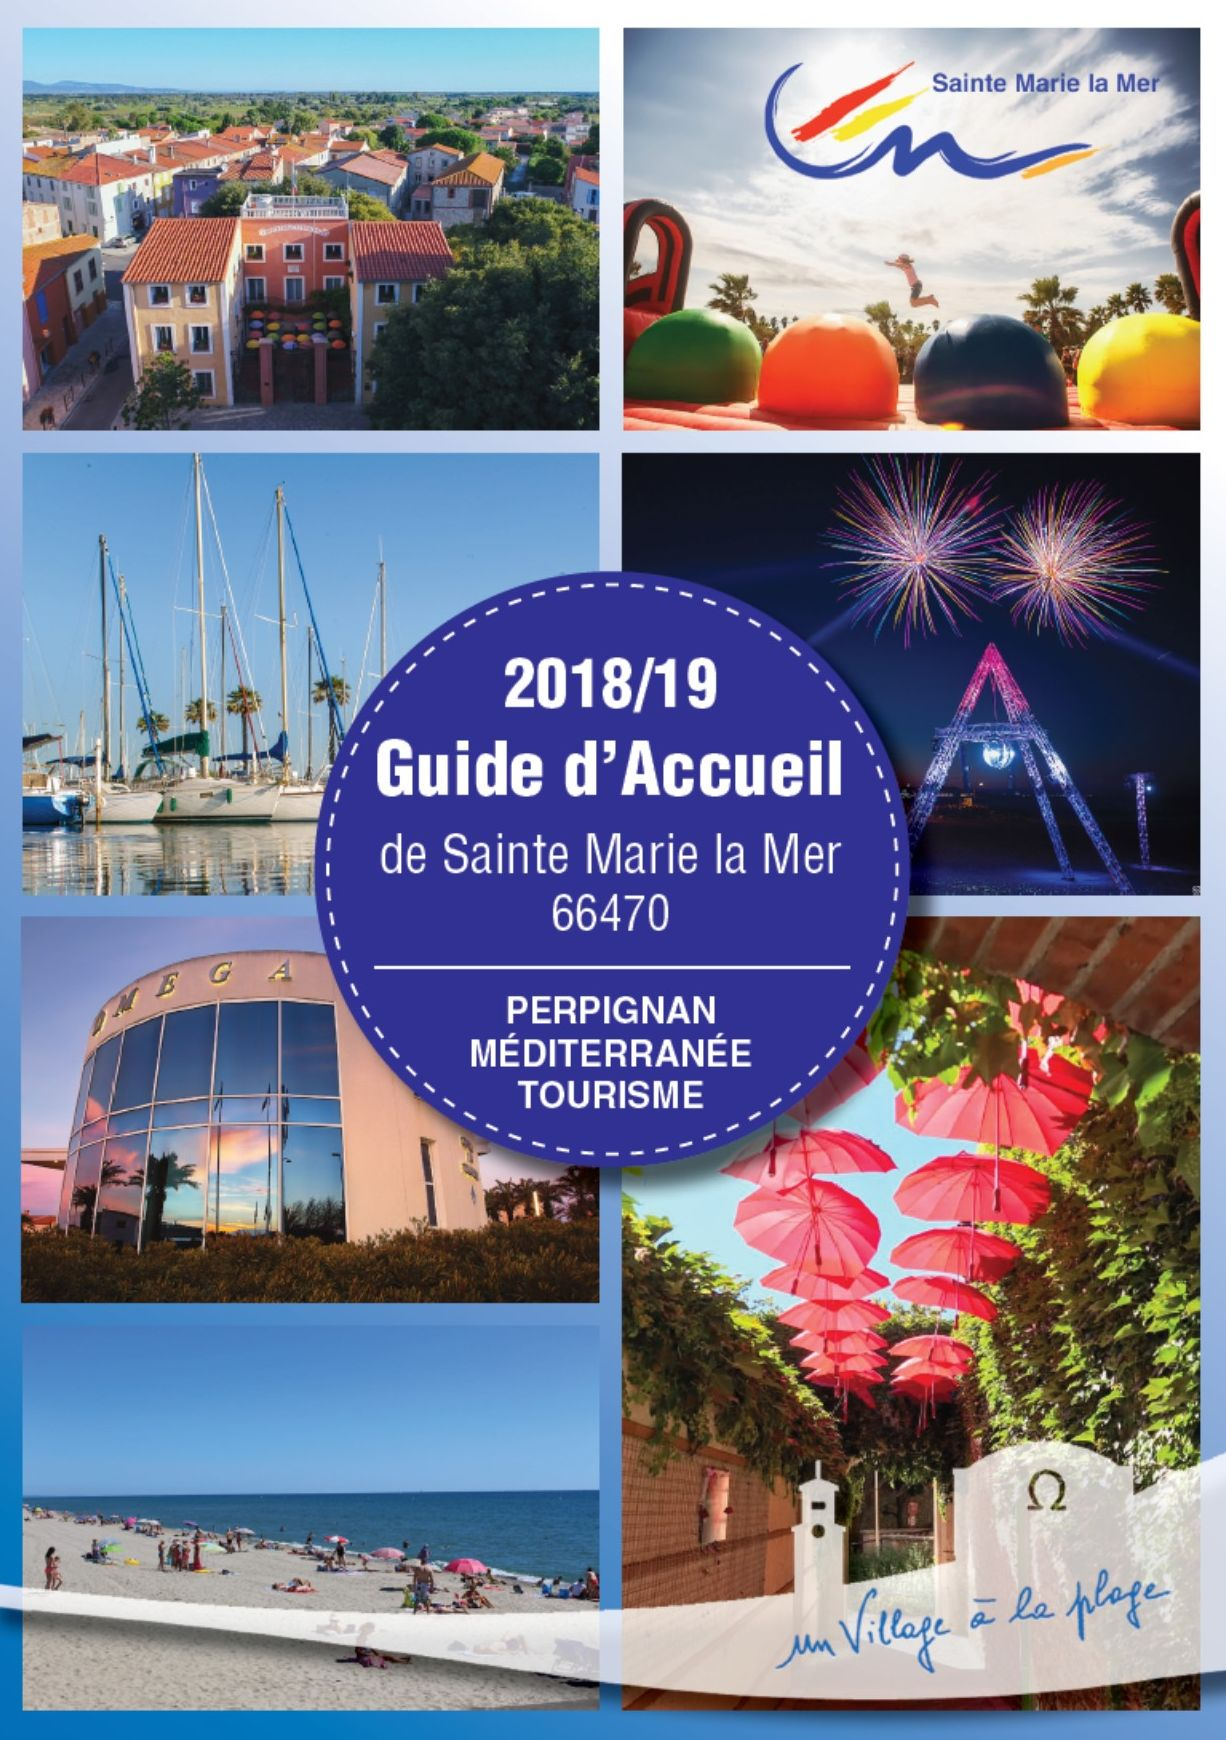 guide pratique sainte marie la mer